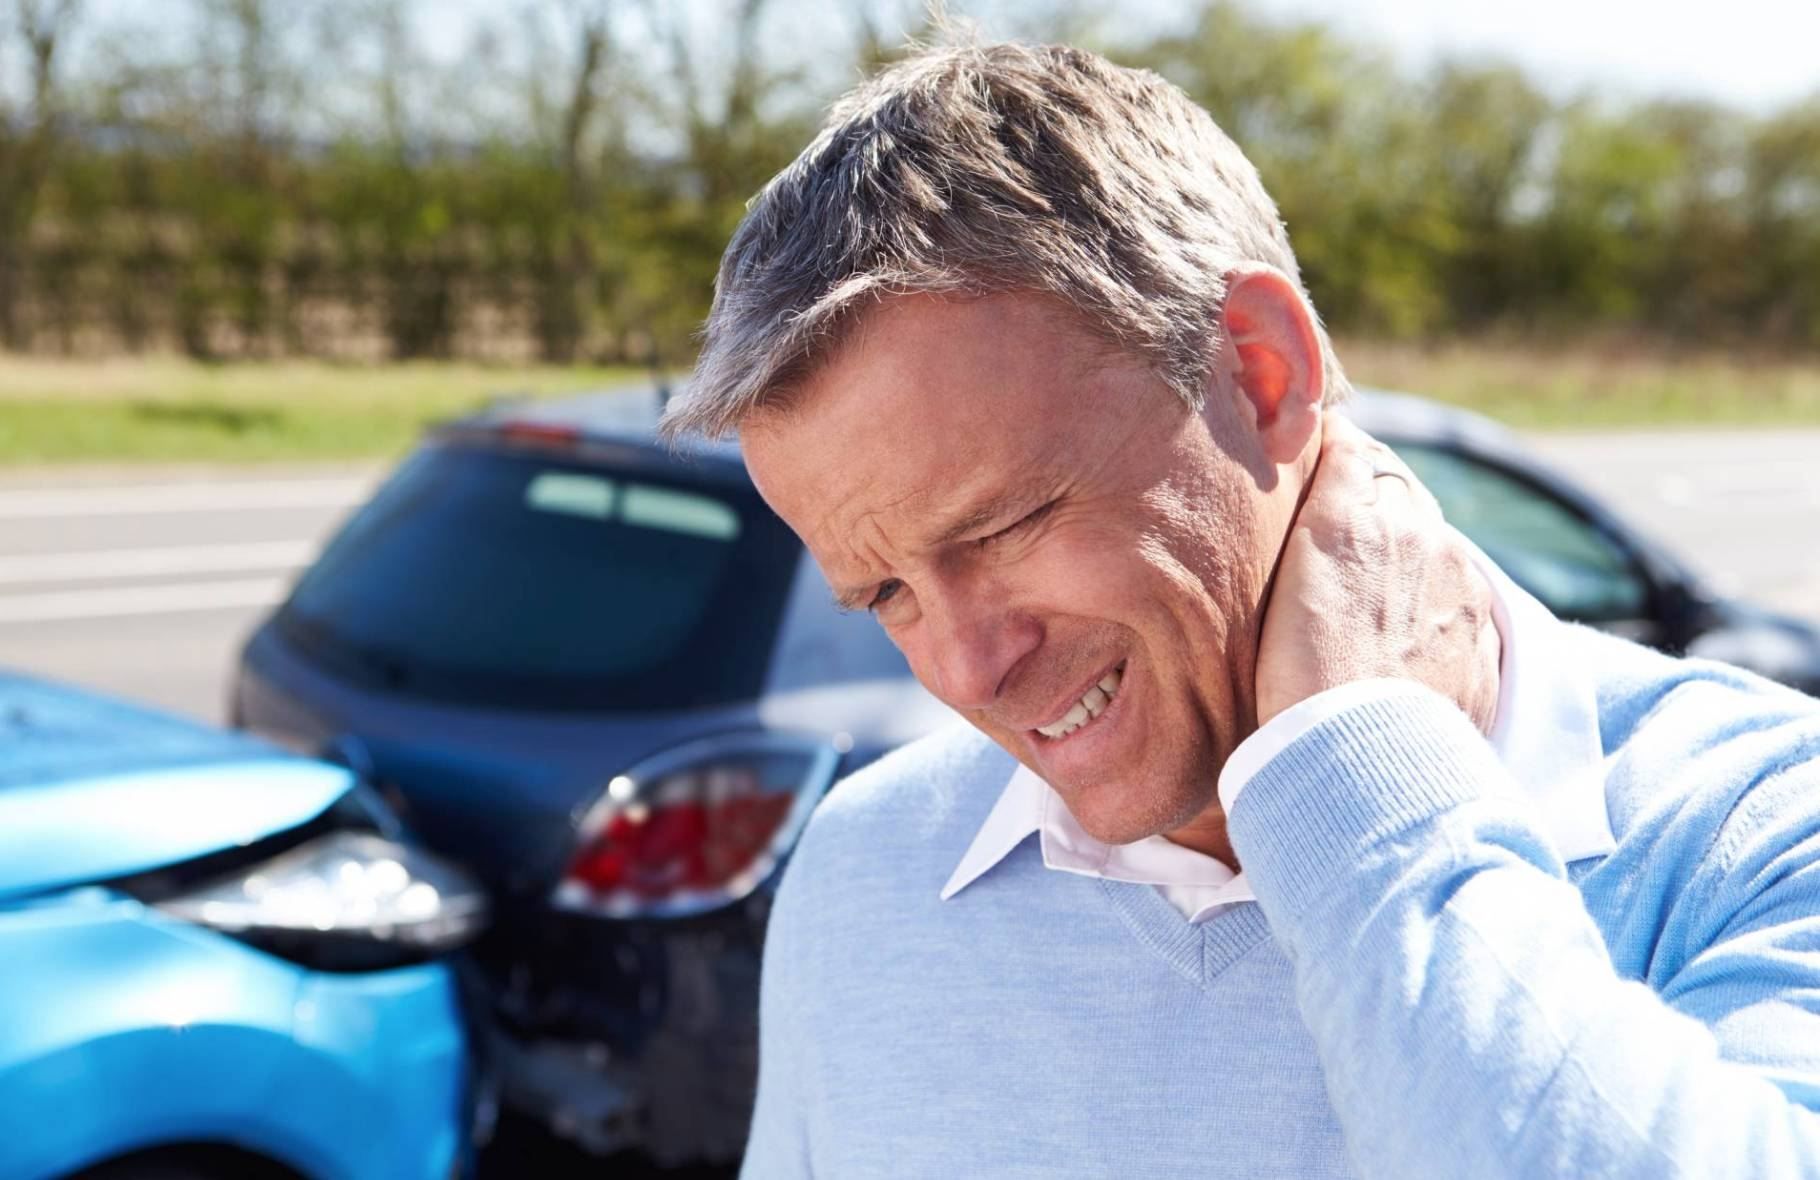 personal injury lawyer in Grant Park, GA